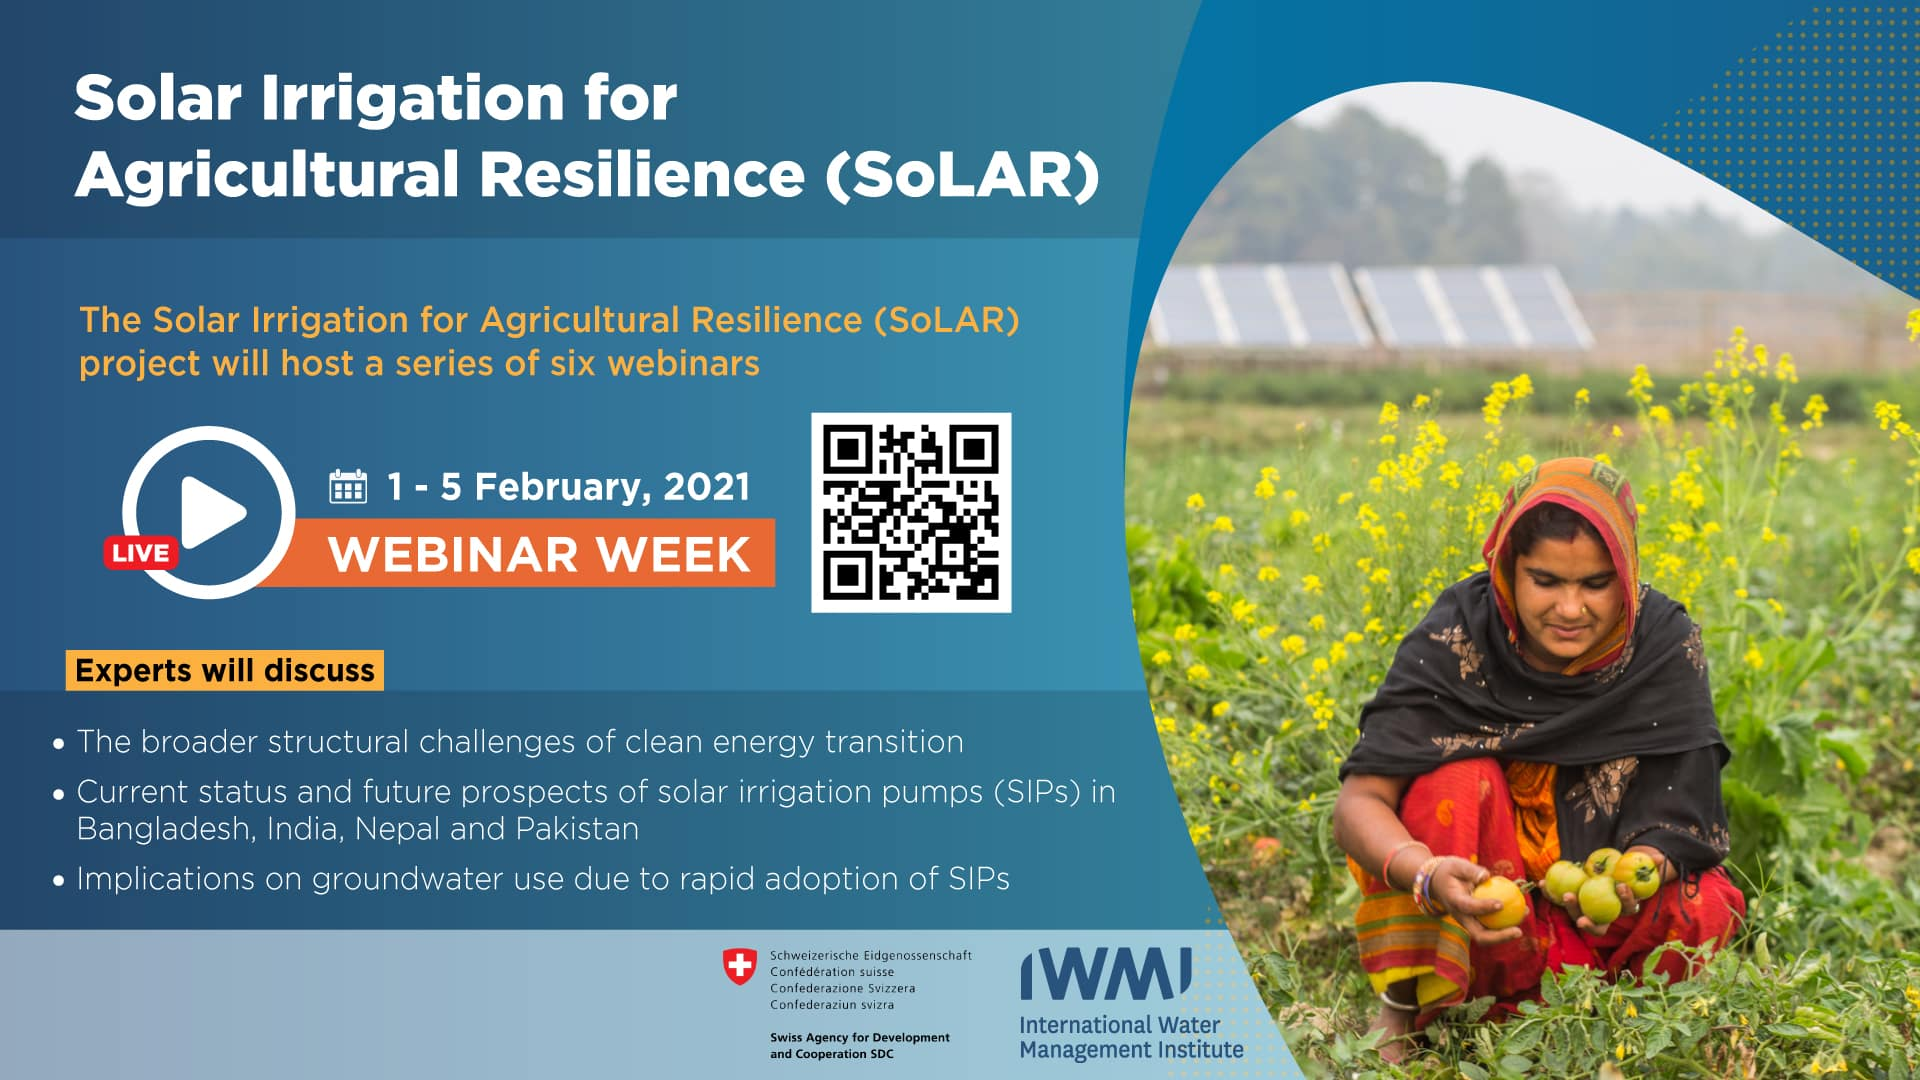 Solar Irrigation for Agricultural Resilience (SoLAR) - Webinar Week